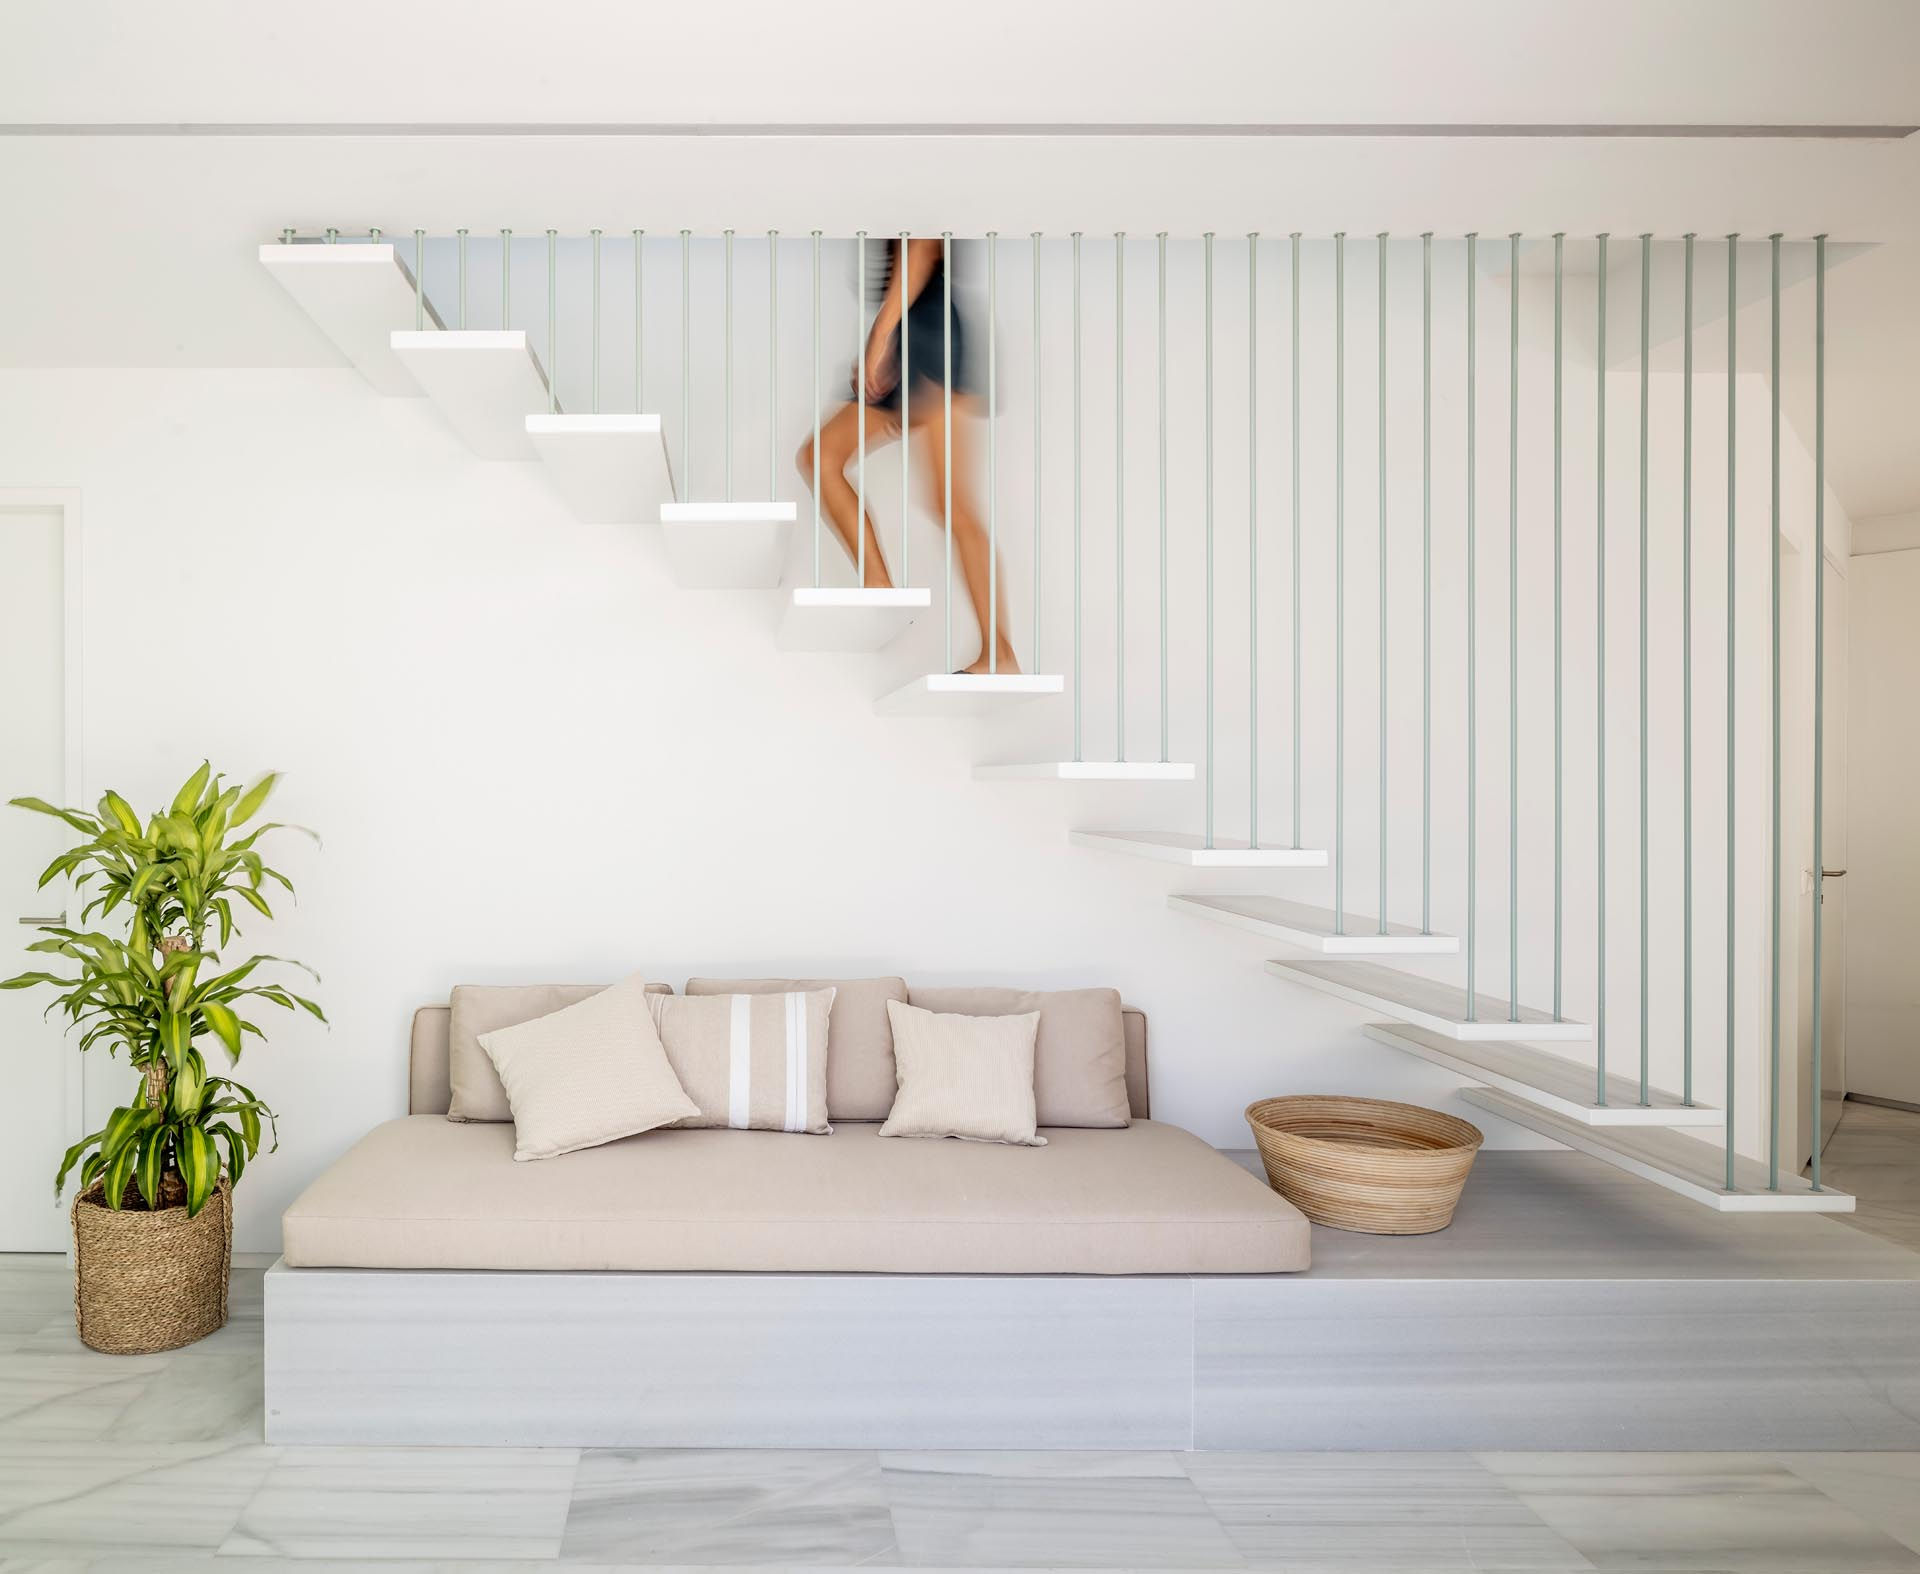 A locally sourced marble and upholstered cushions have been used to create a comfortable seating nook underneath the stairs.